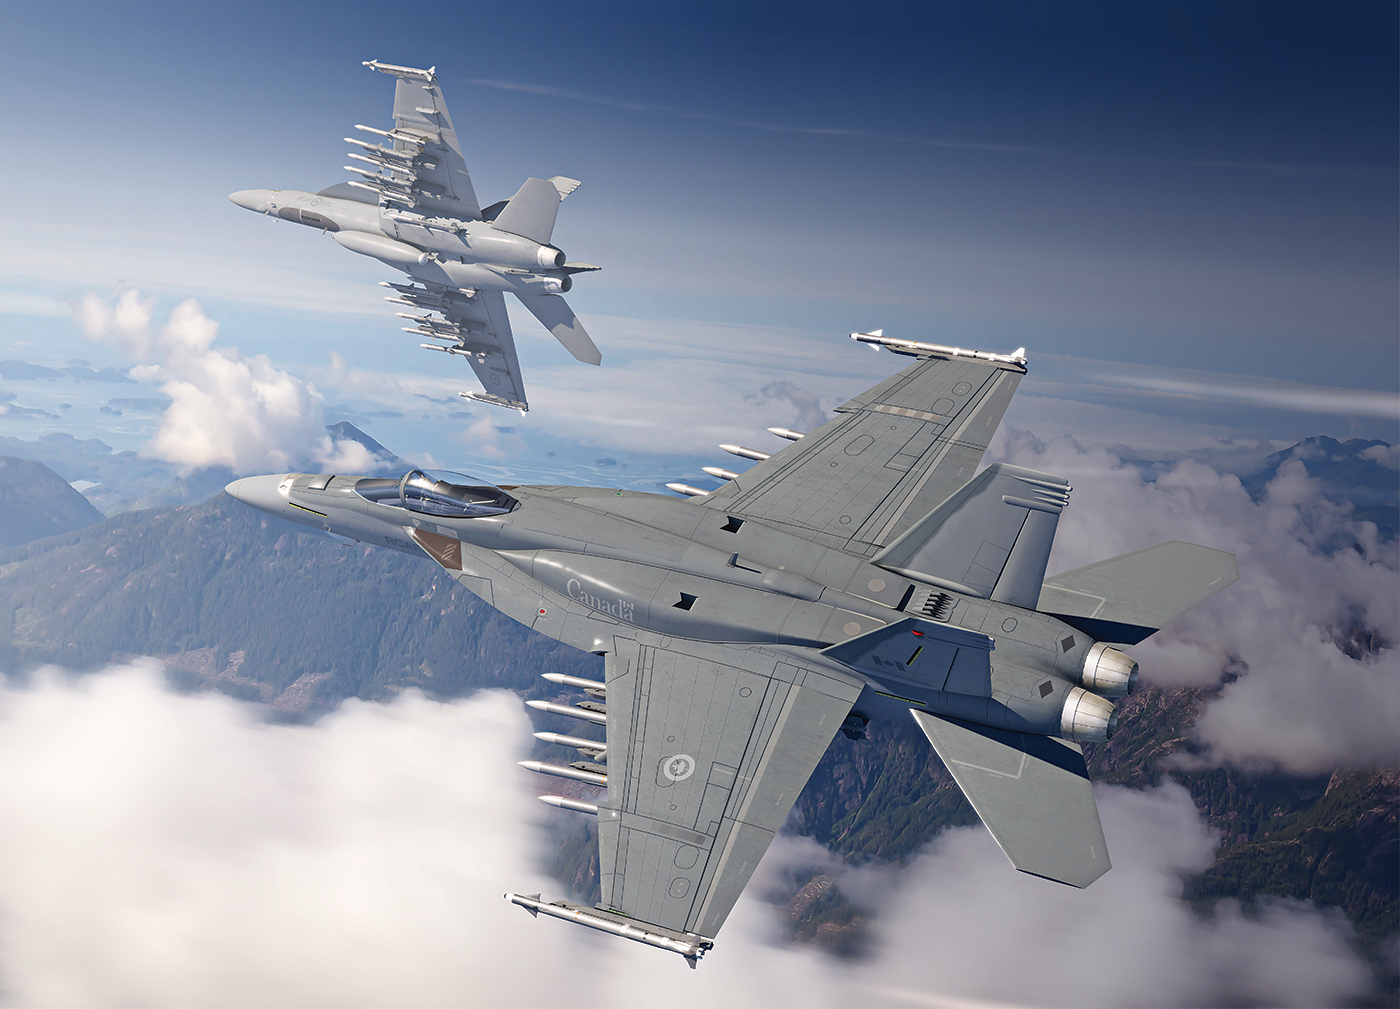 """The Block III Super Hornet features conformal fuel tanks (behind the cockpit on the jet's """"shoulders"""") that expand its standard combat air patrol mission range by about 20 per cent, or increase the loiter time by roughly 30 minutes. Boeing Image"""